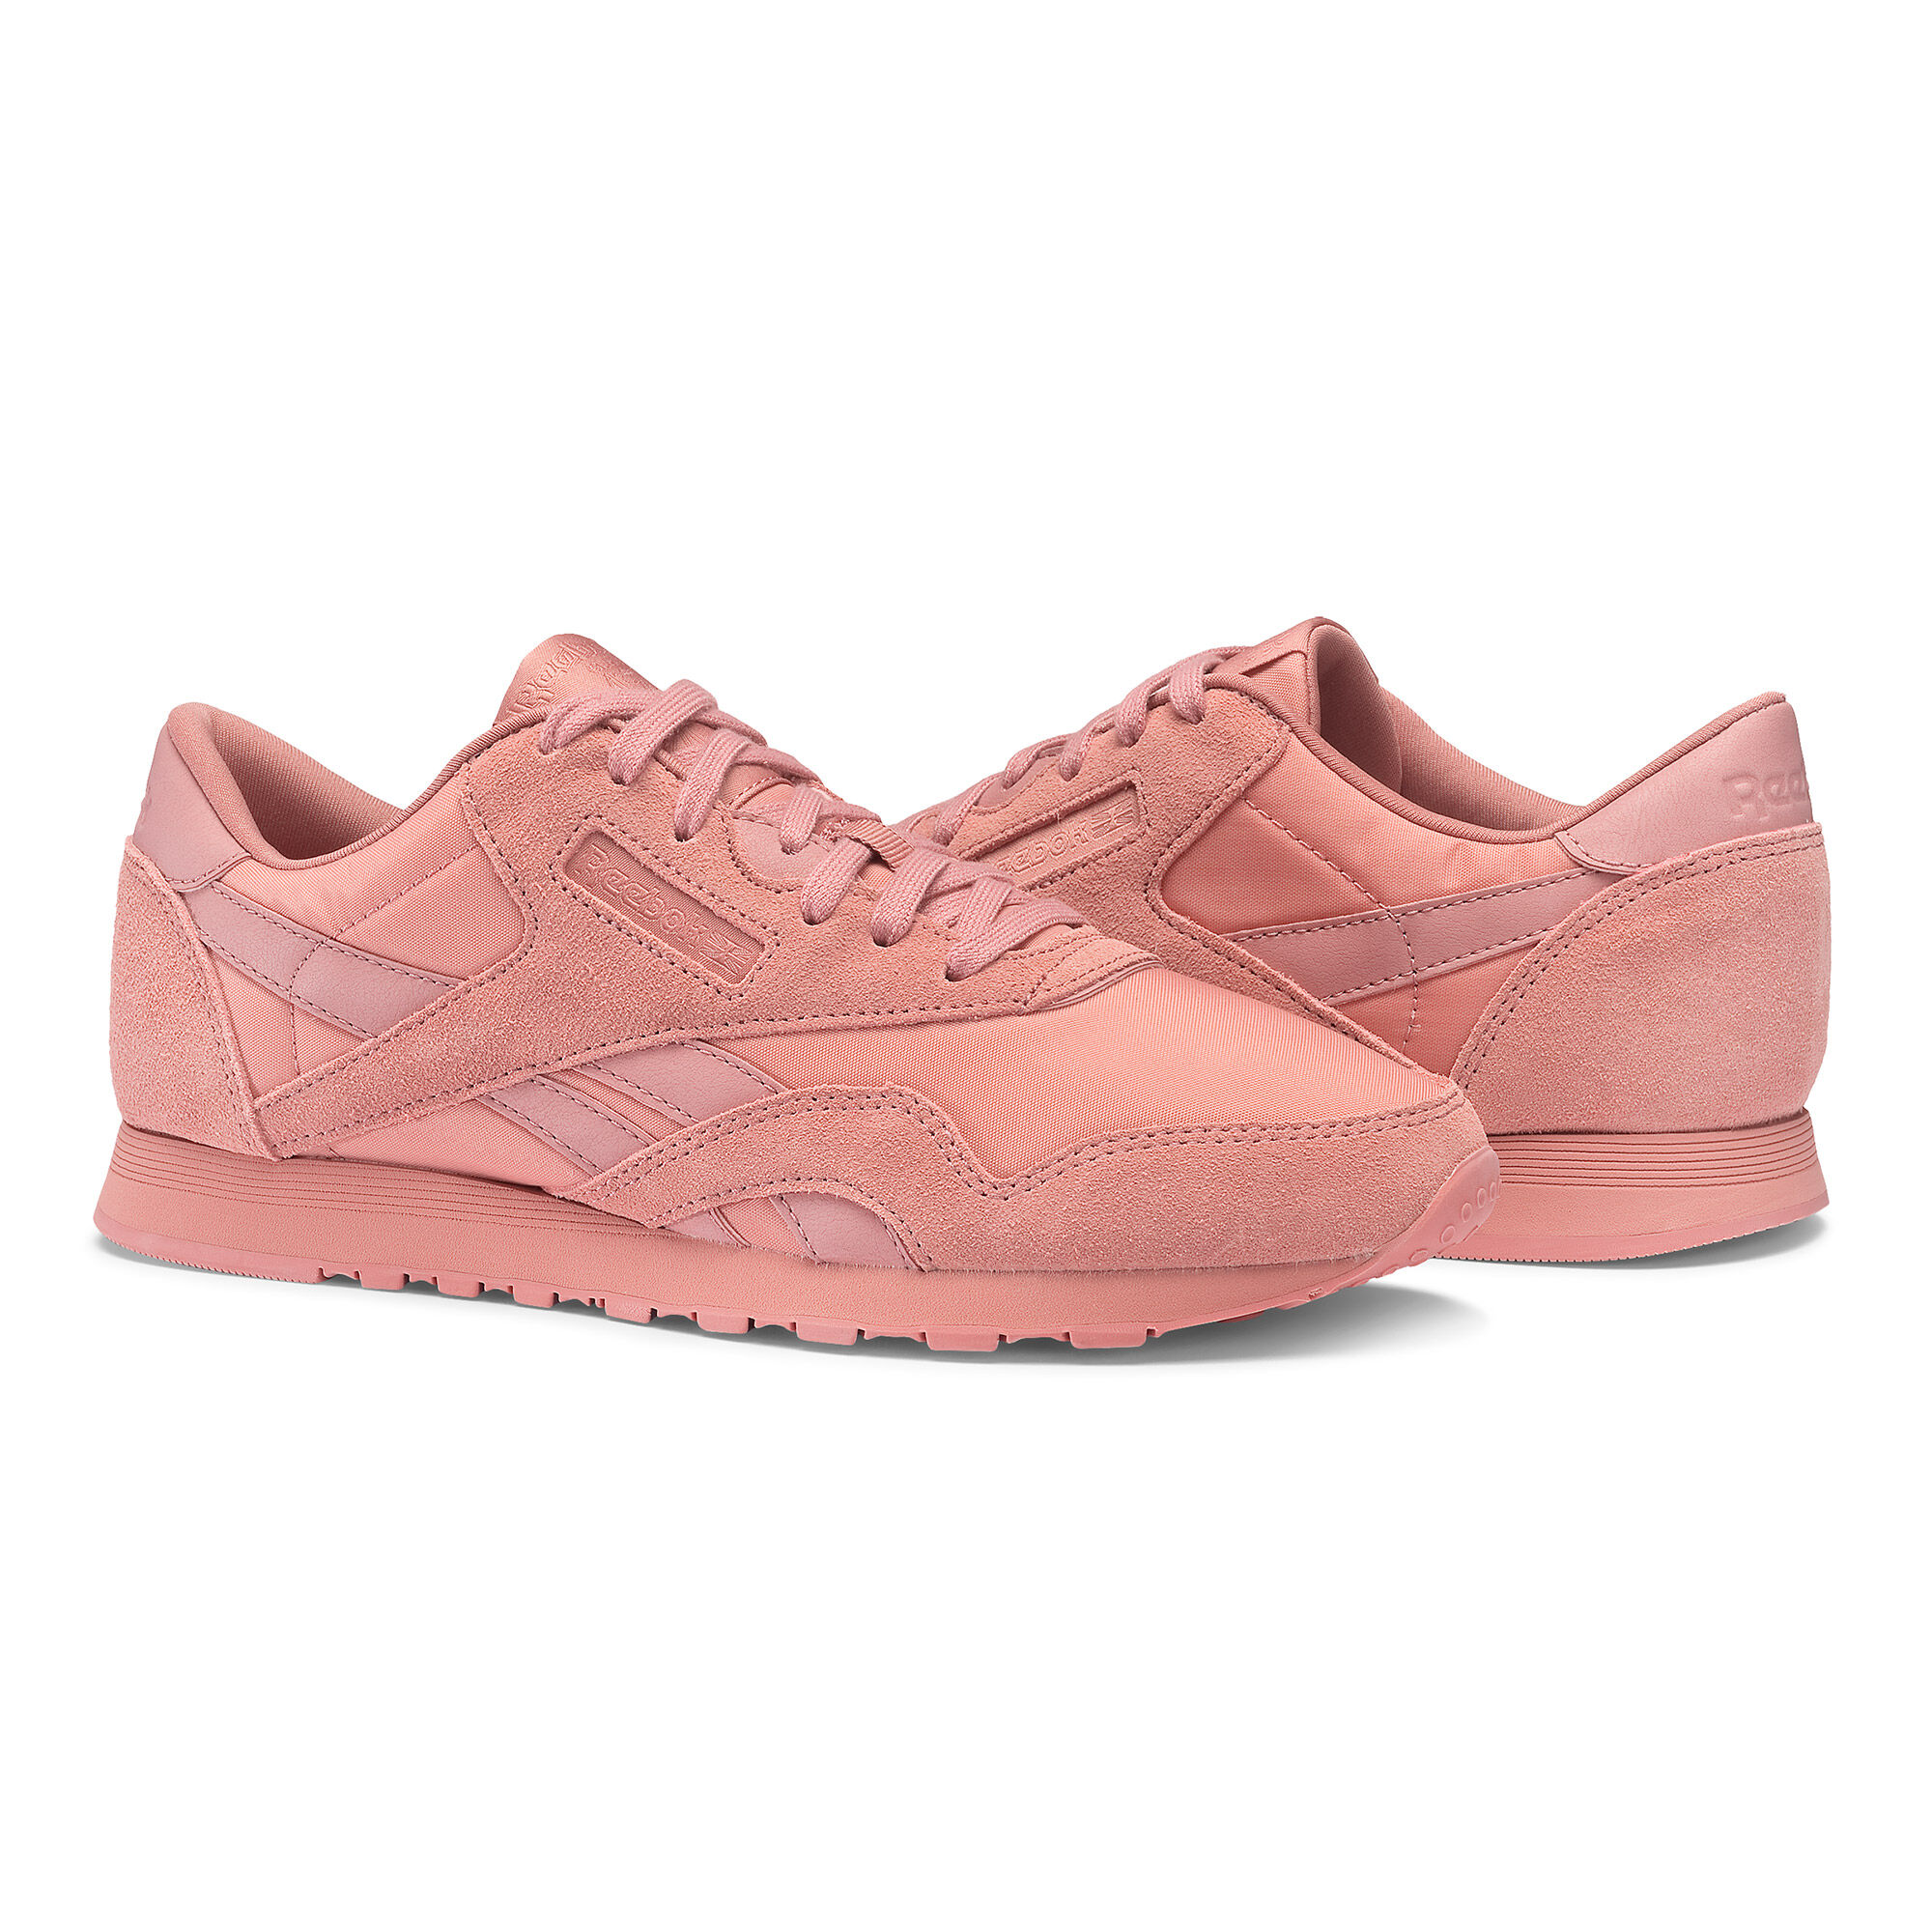 REEBOK Classic suede trainers Sandy rose mono - H8509